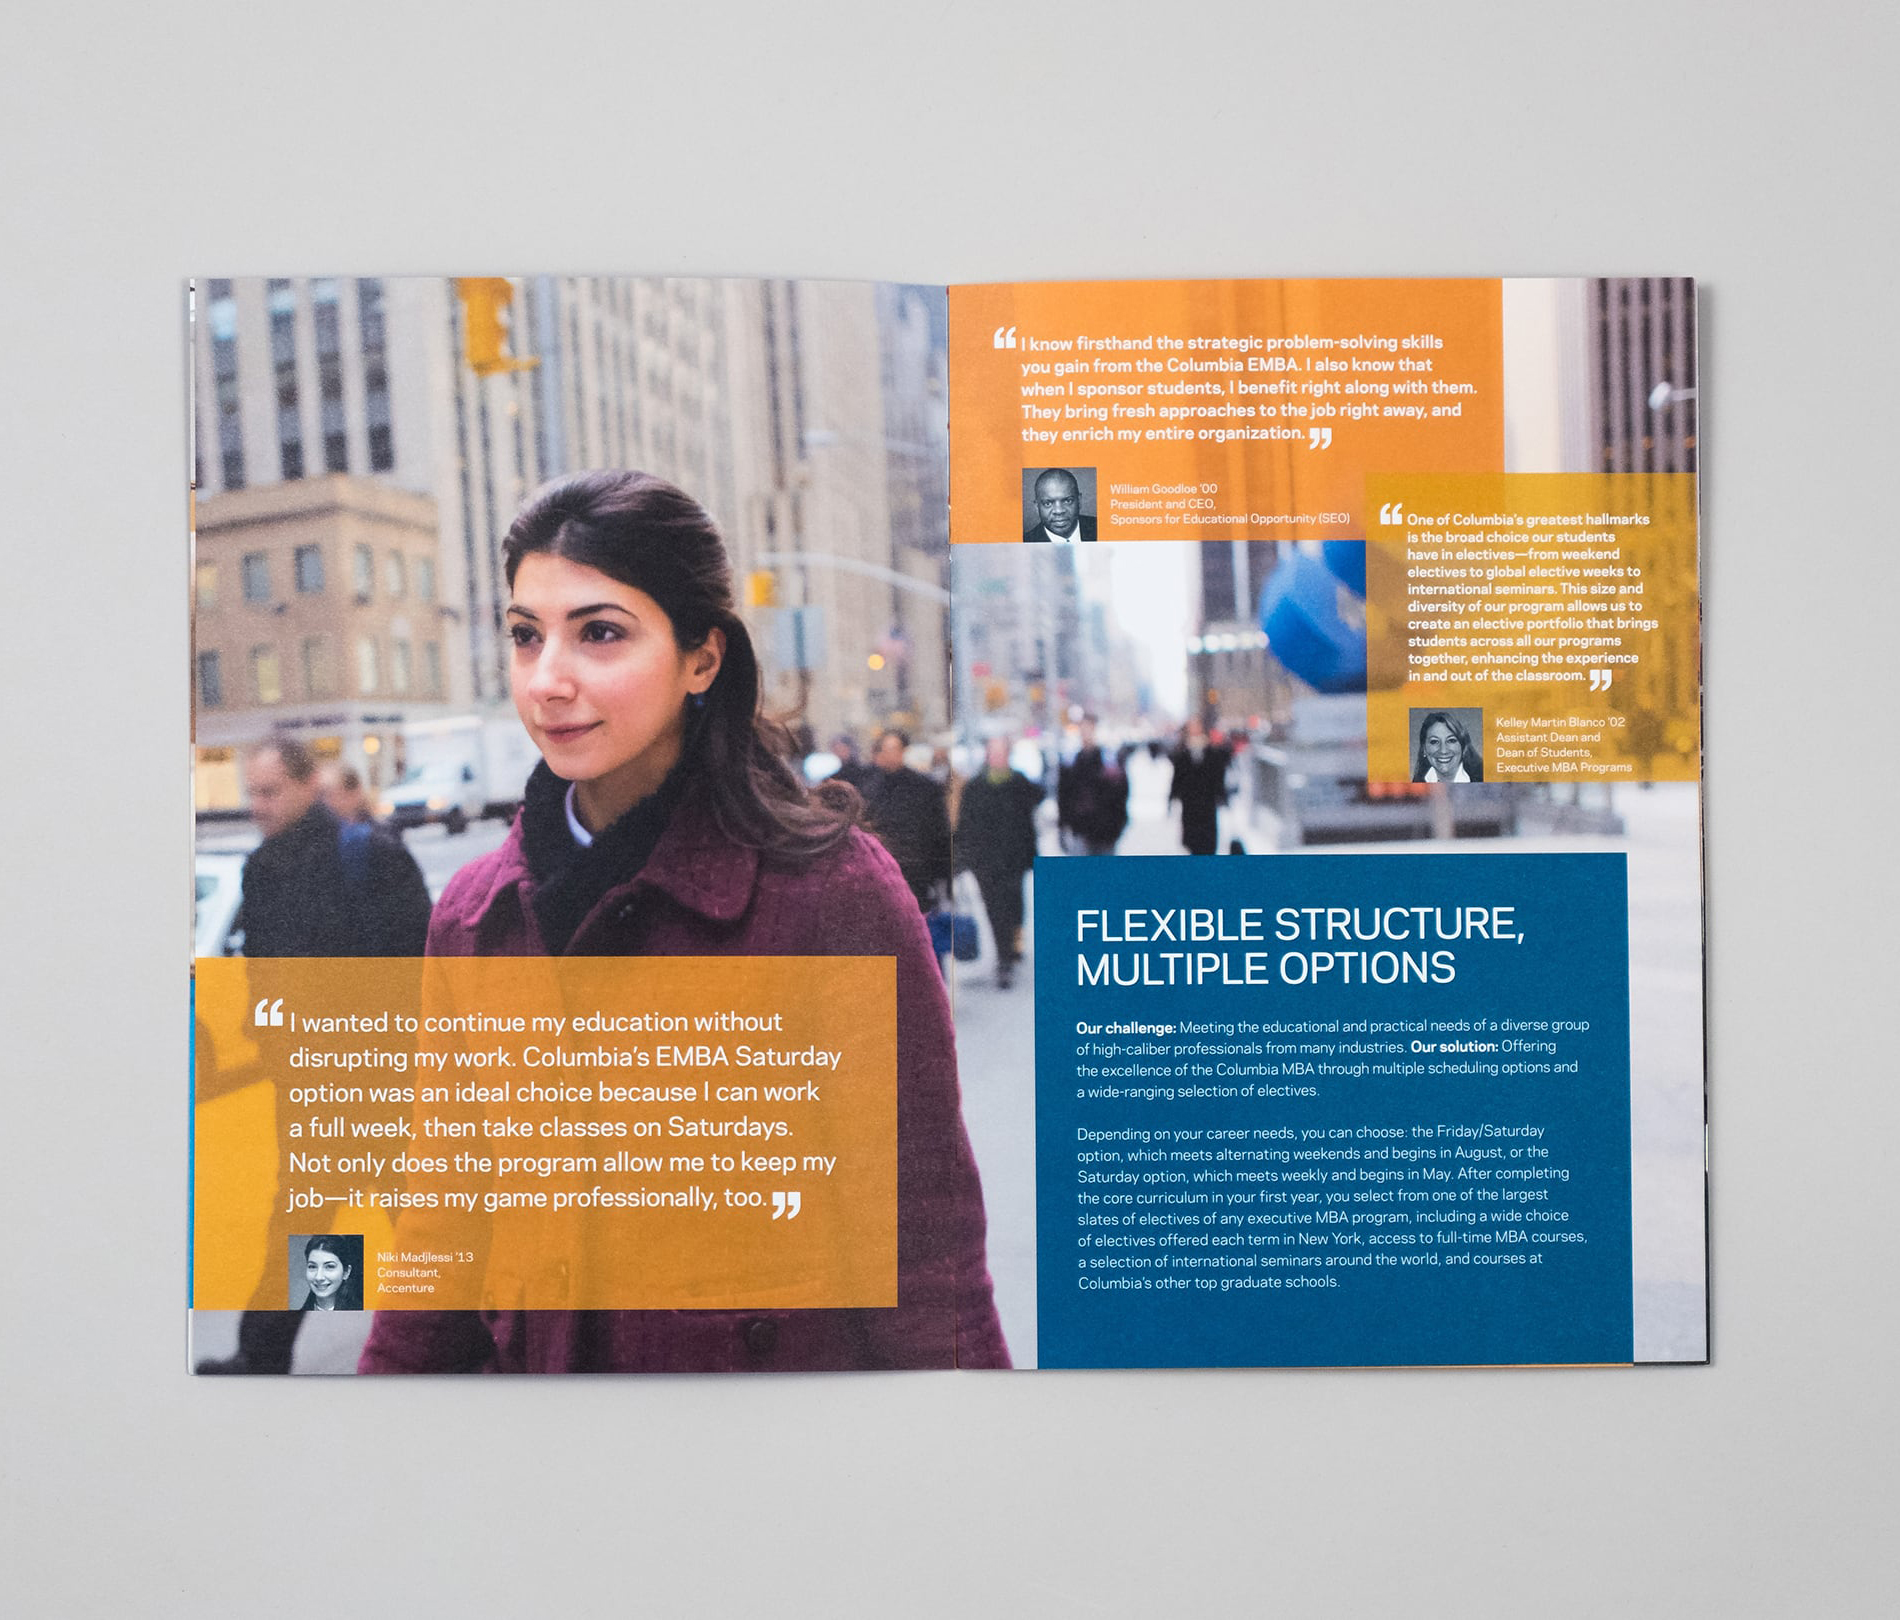 Interior spread with full-page image of former student walking on the street in New York City with various testimonials from other students